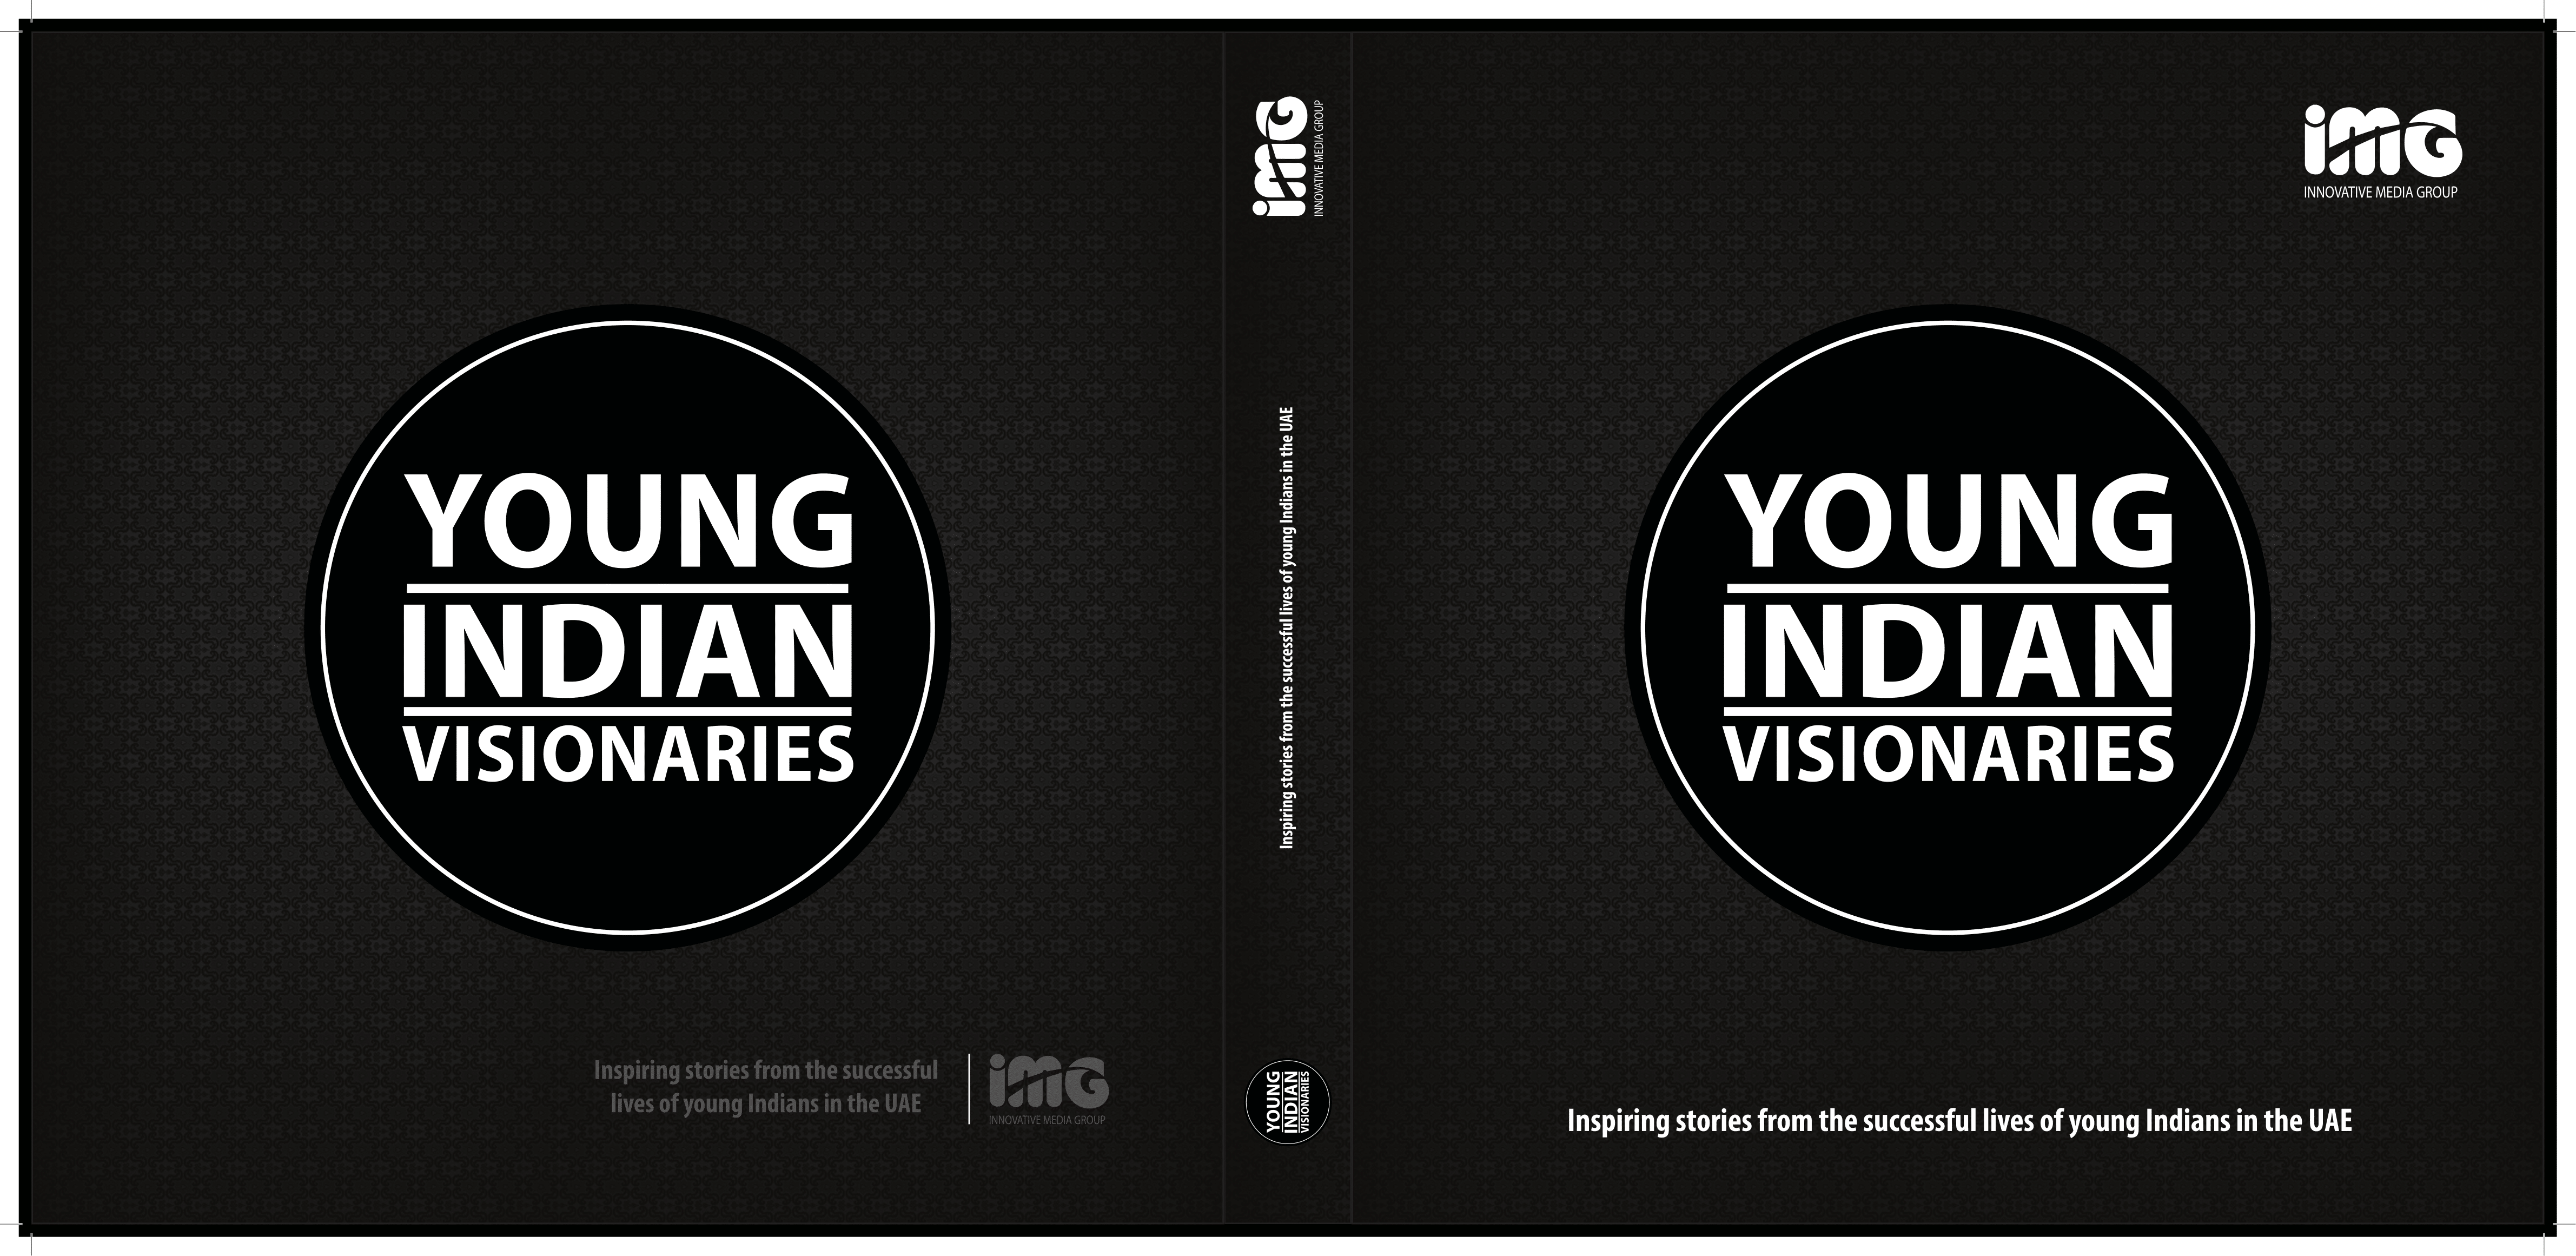 Jaihoon featured in Young Indian Visionaries, a thoughtfully researched coffee table book that profiles the vision and success of 70 young Indian visionaries.